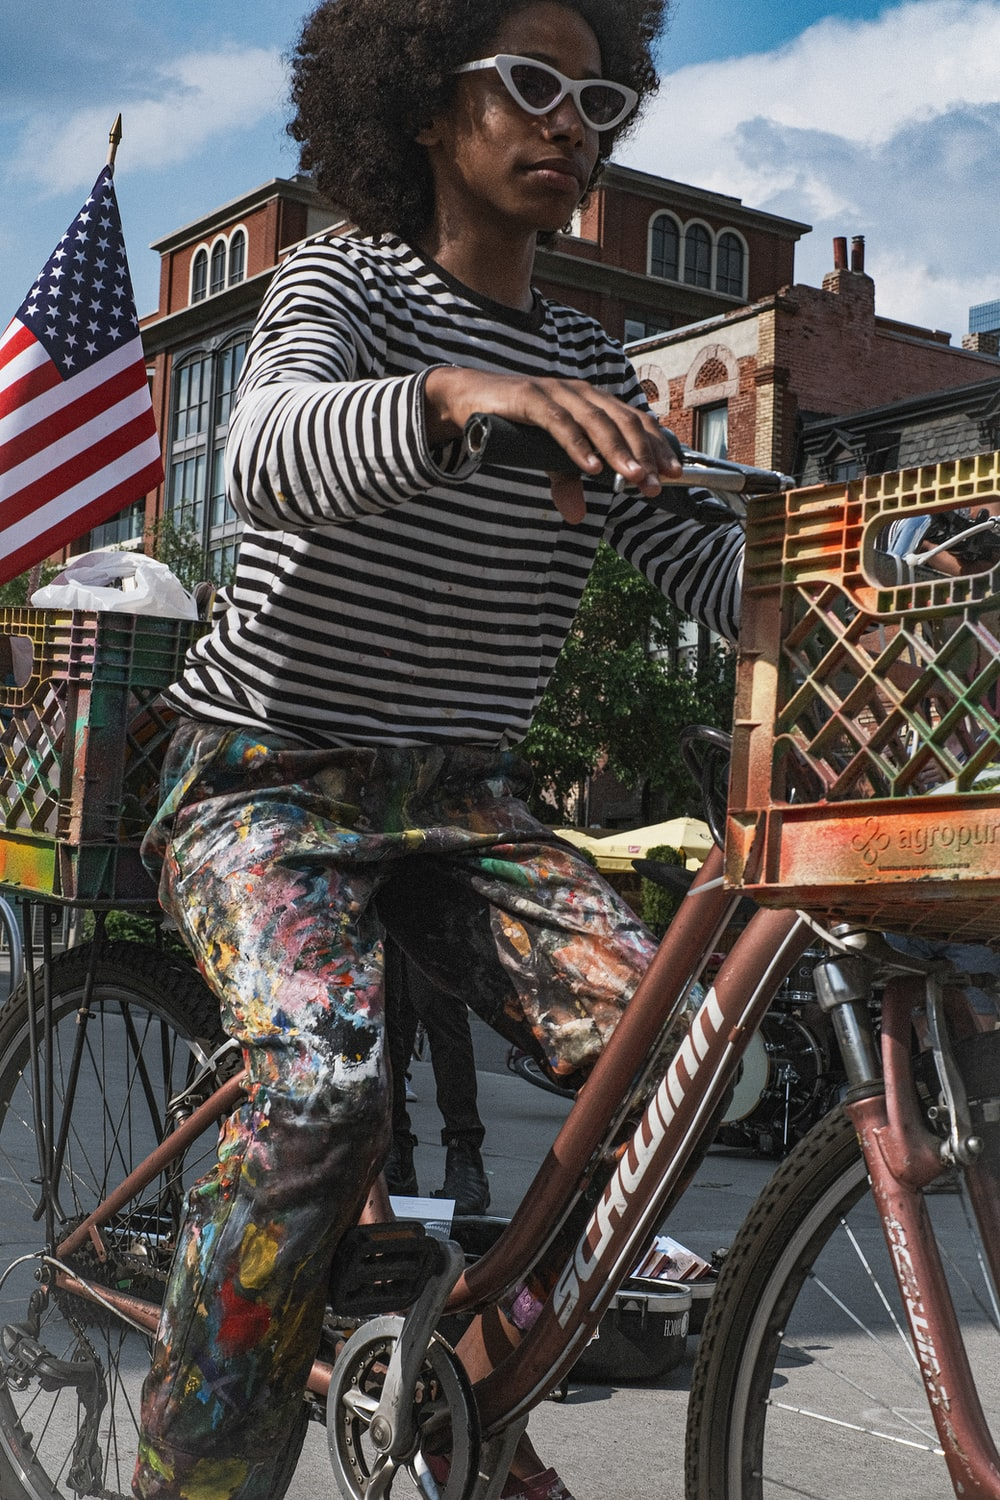 woman in black and white stripe shirt and gray pants riding on bicycle